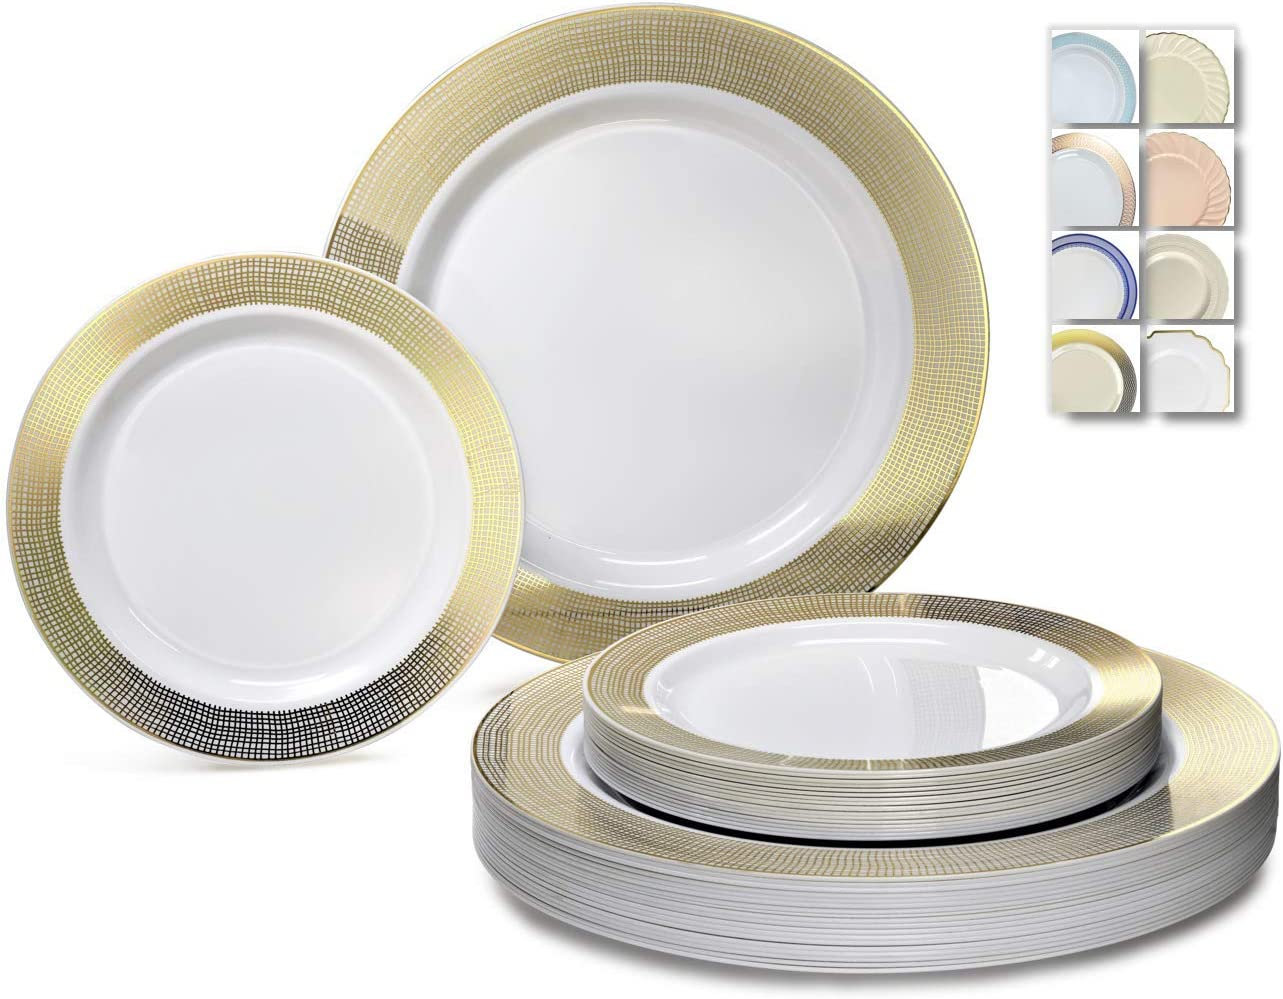 OCCASIONS 240 Plates Pack,(120 Guests) Heavyweight Premium Disposable Plastic Plates Set -120 x 10.5'' Dinner + 120 x 7.5'' Salad/Dessert (Linen White/Gold) 715MzFW3zUL